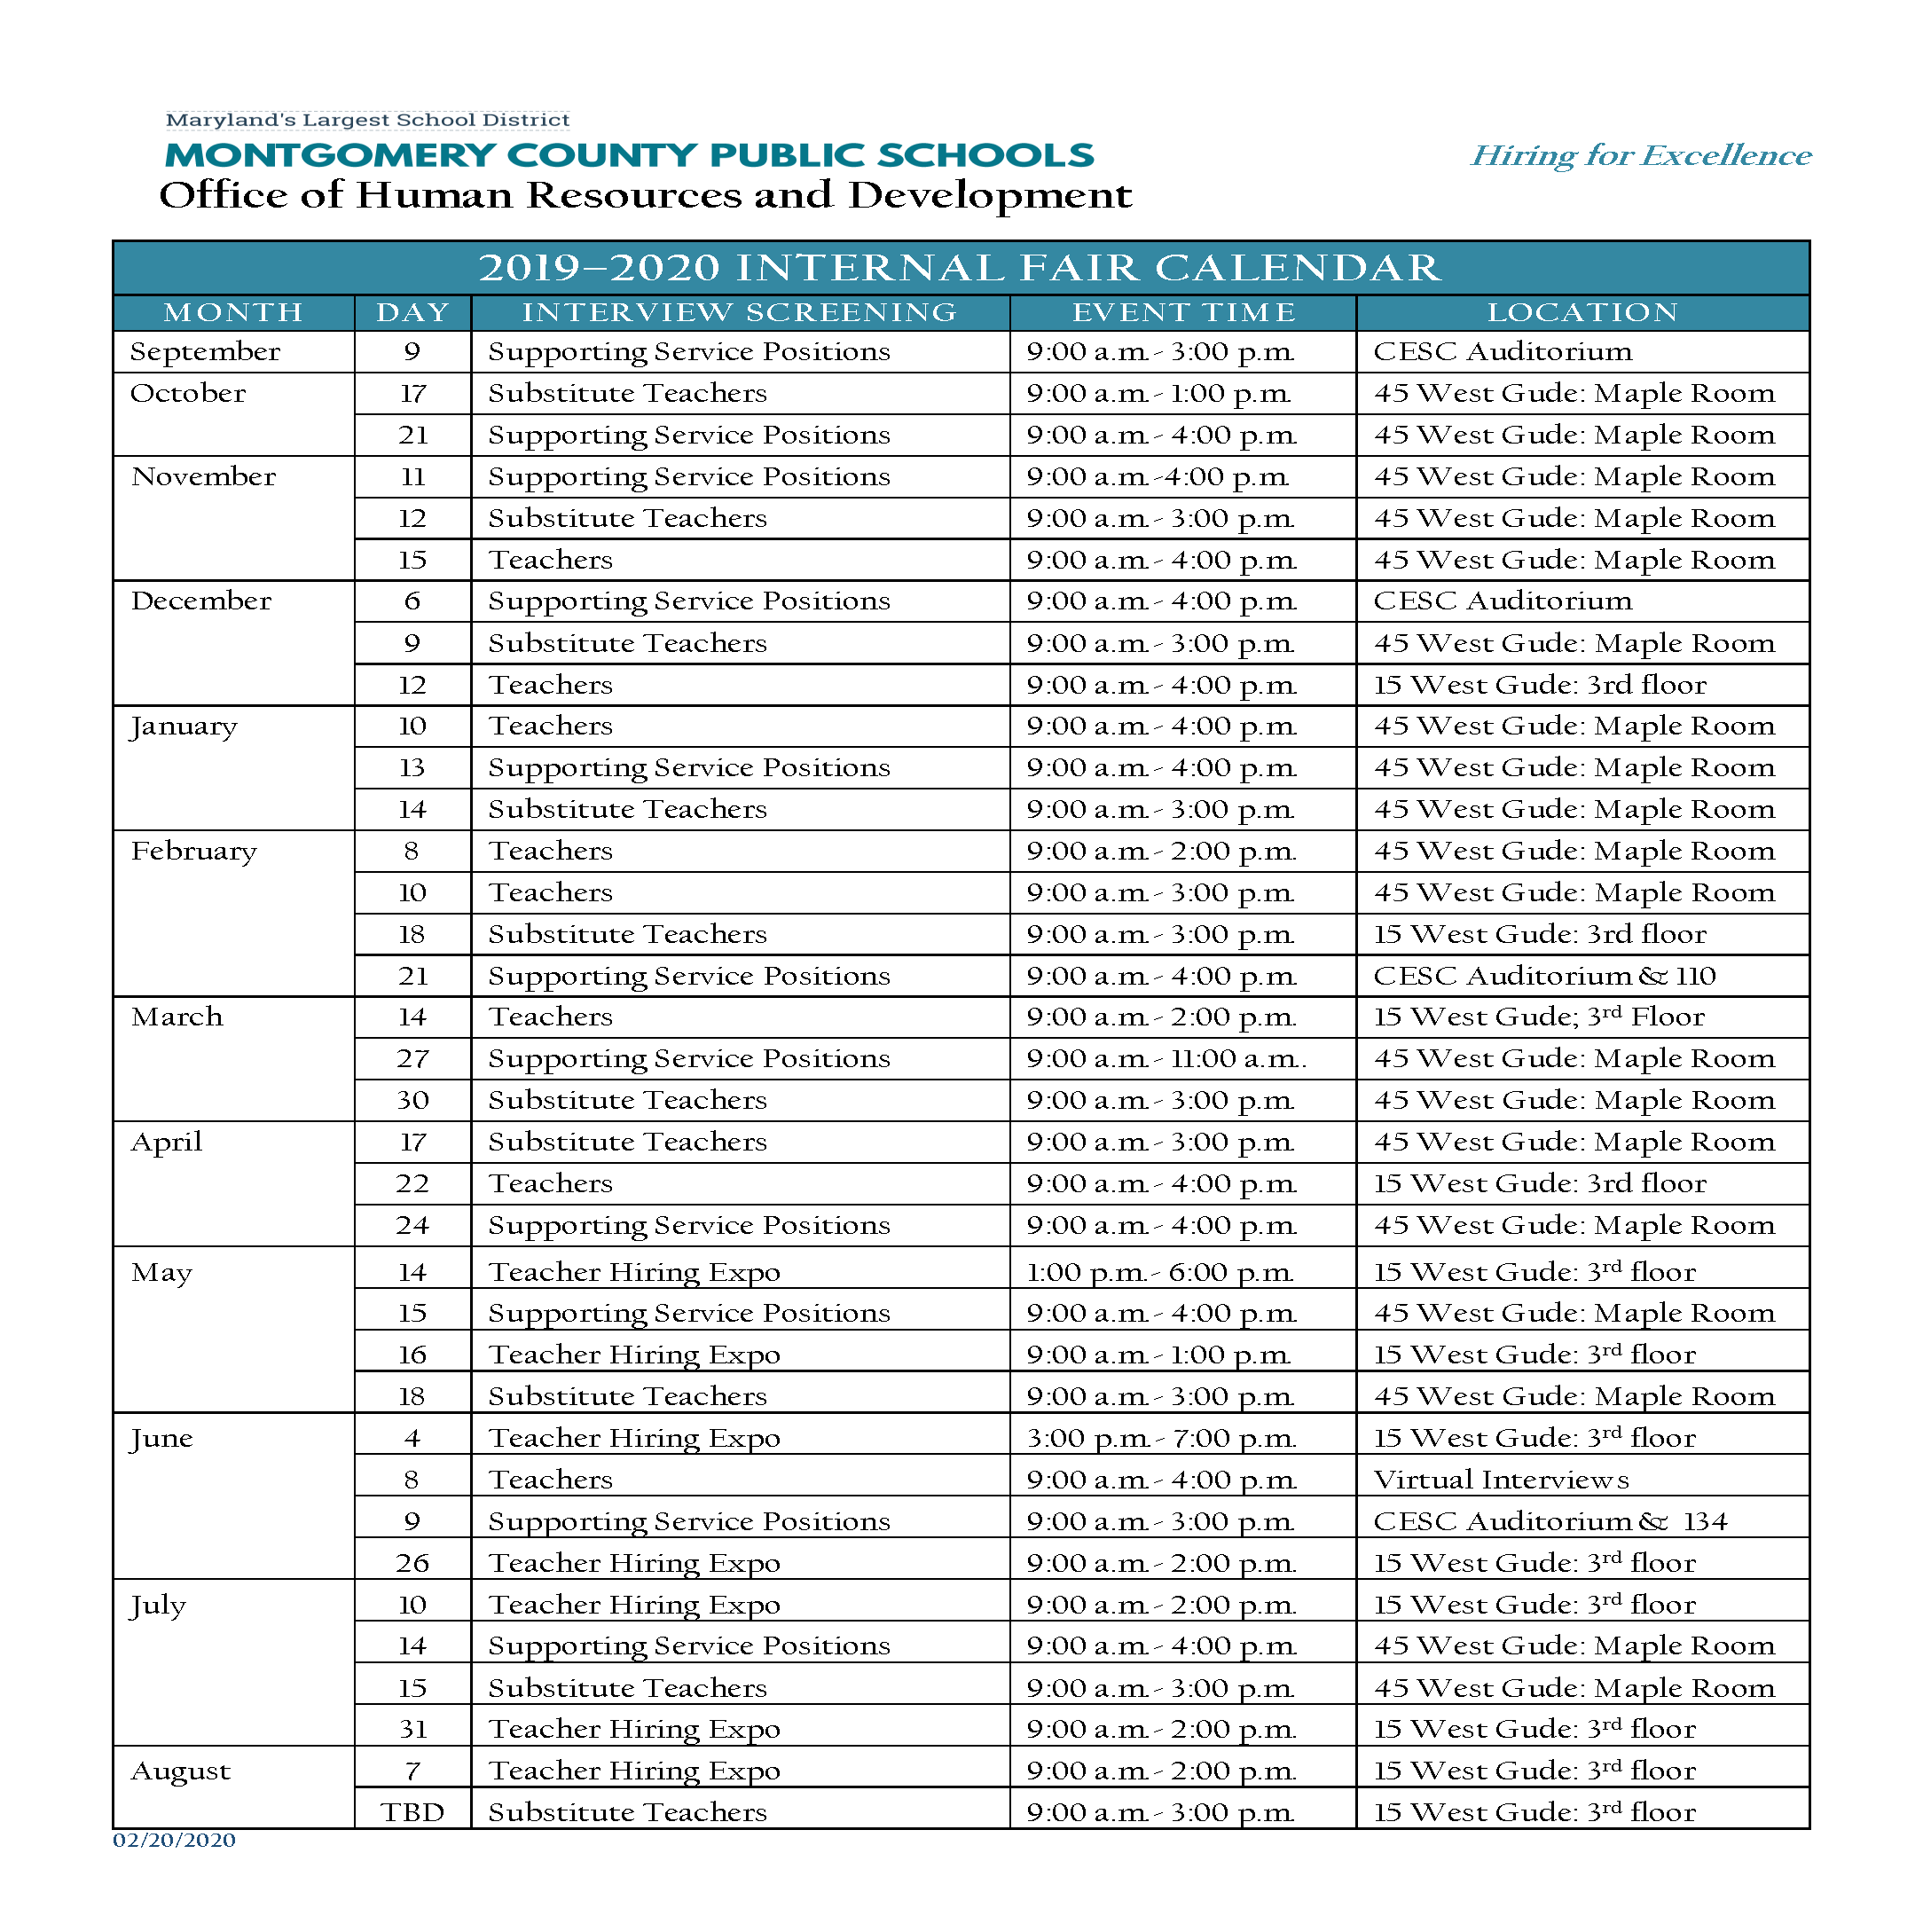 MCPS Internal Recruitment Calendar